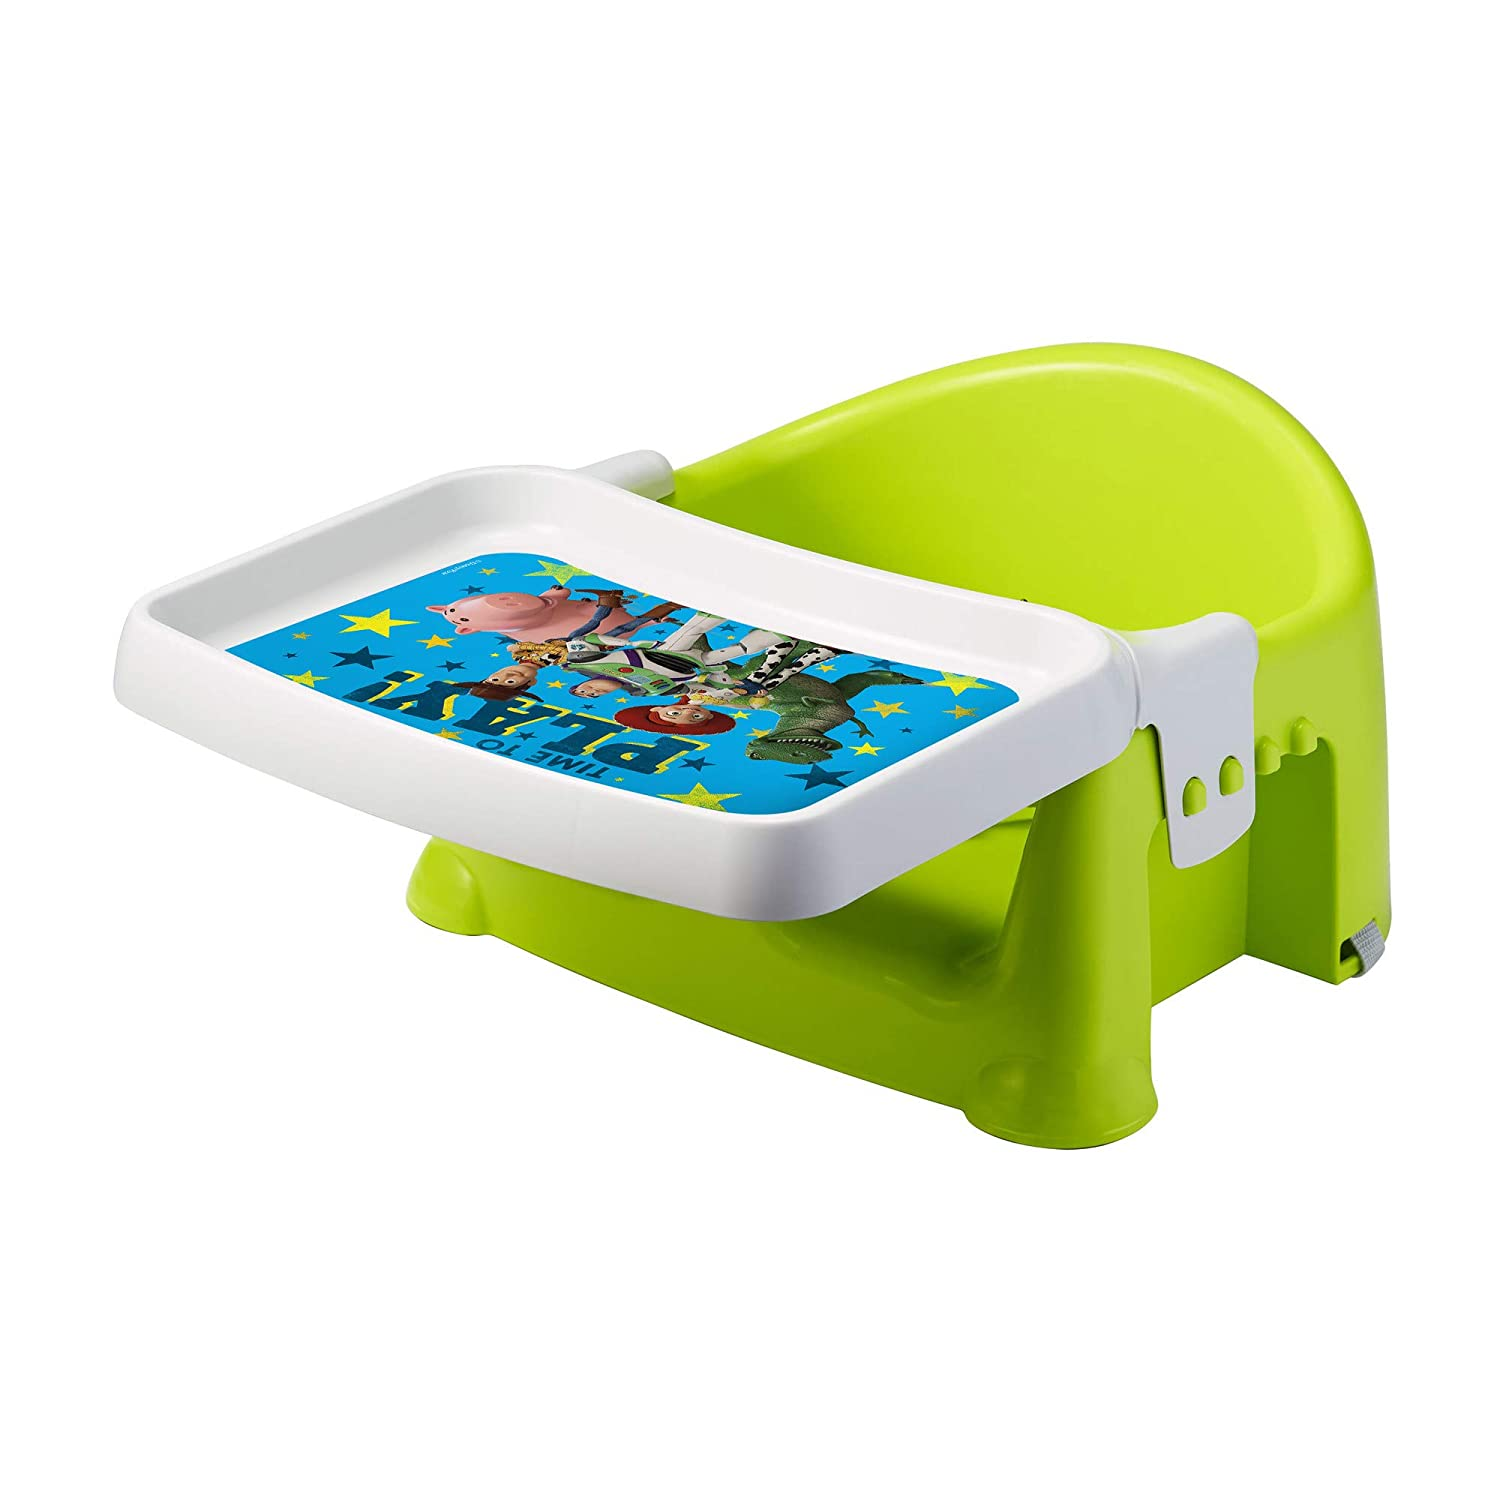 The First Years Disney/Pixar 3-in-1 Booster Seat, Toy Story